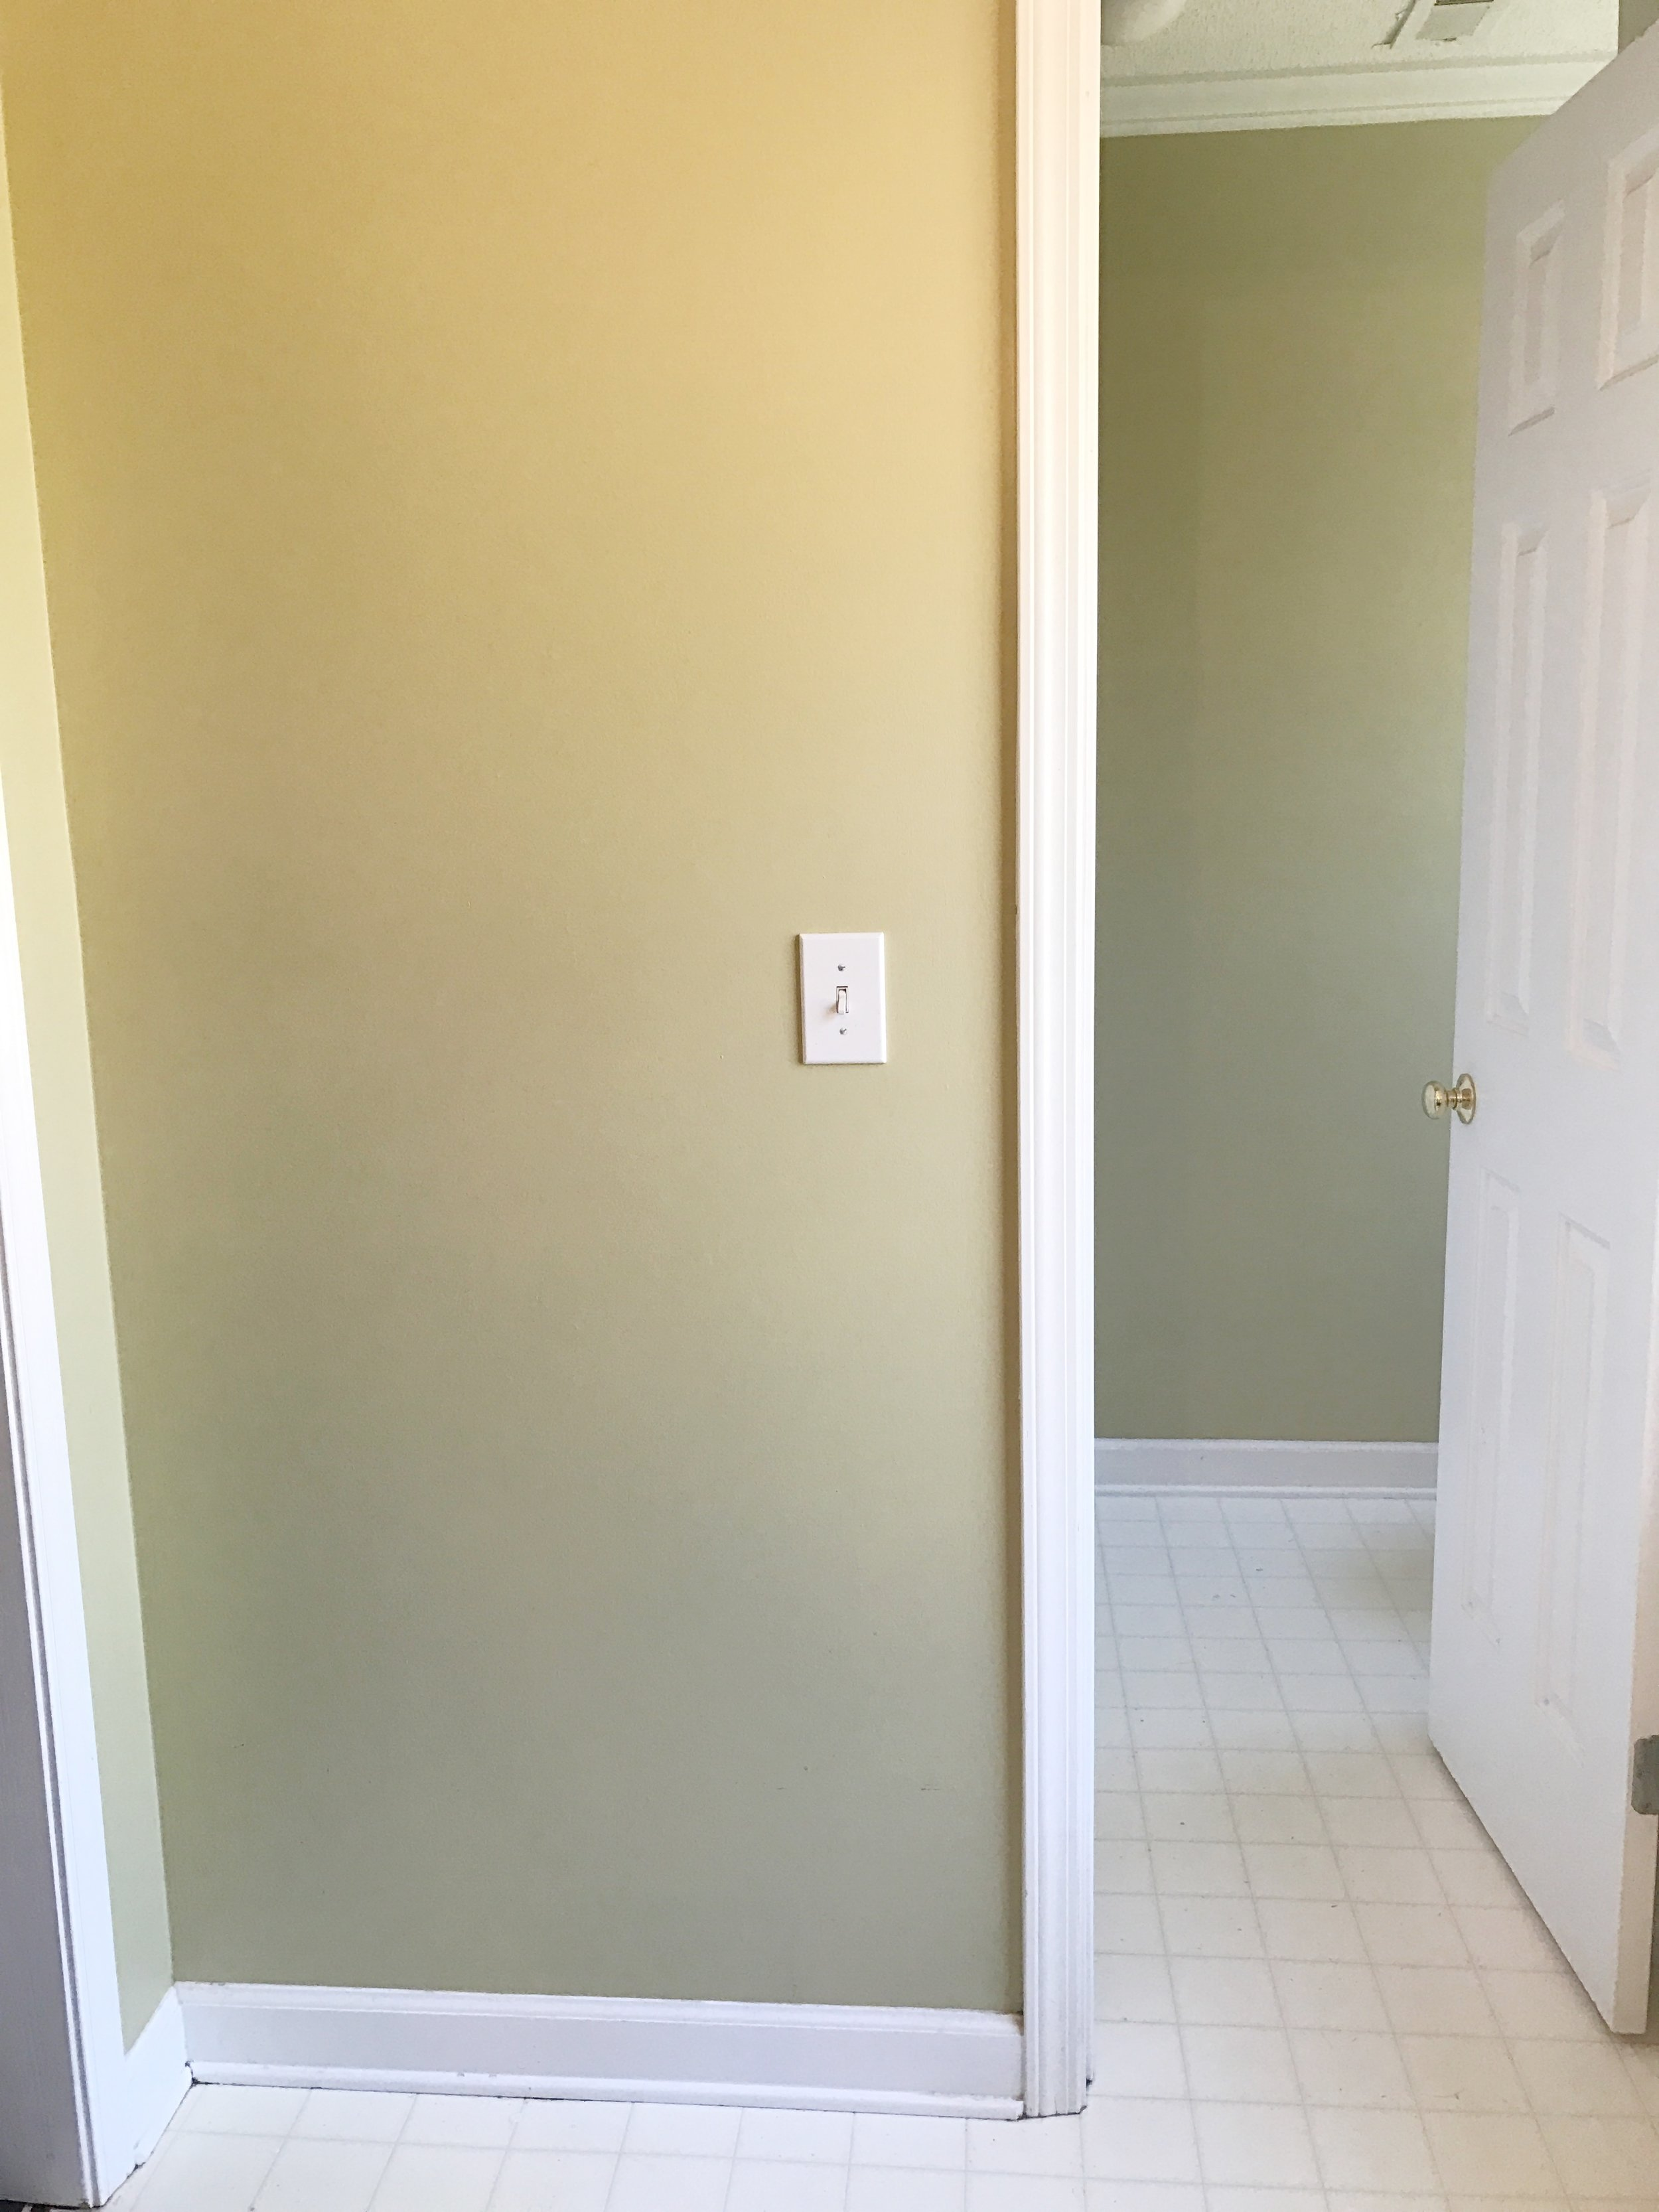 How to Paint Your Linoleum or Tile Floors to Look Like Patterned Cement Tiles- The Ugly Before